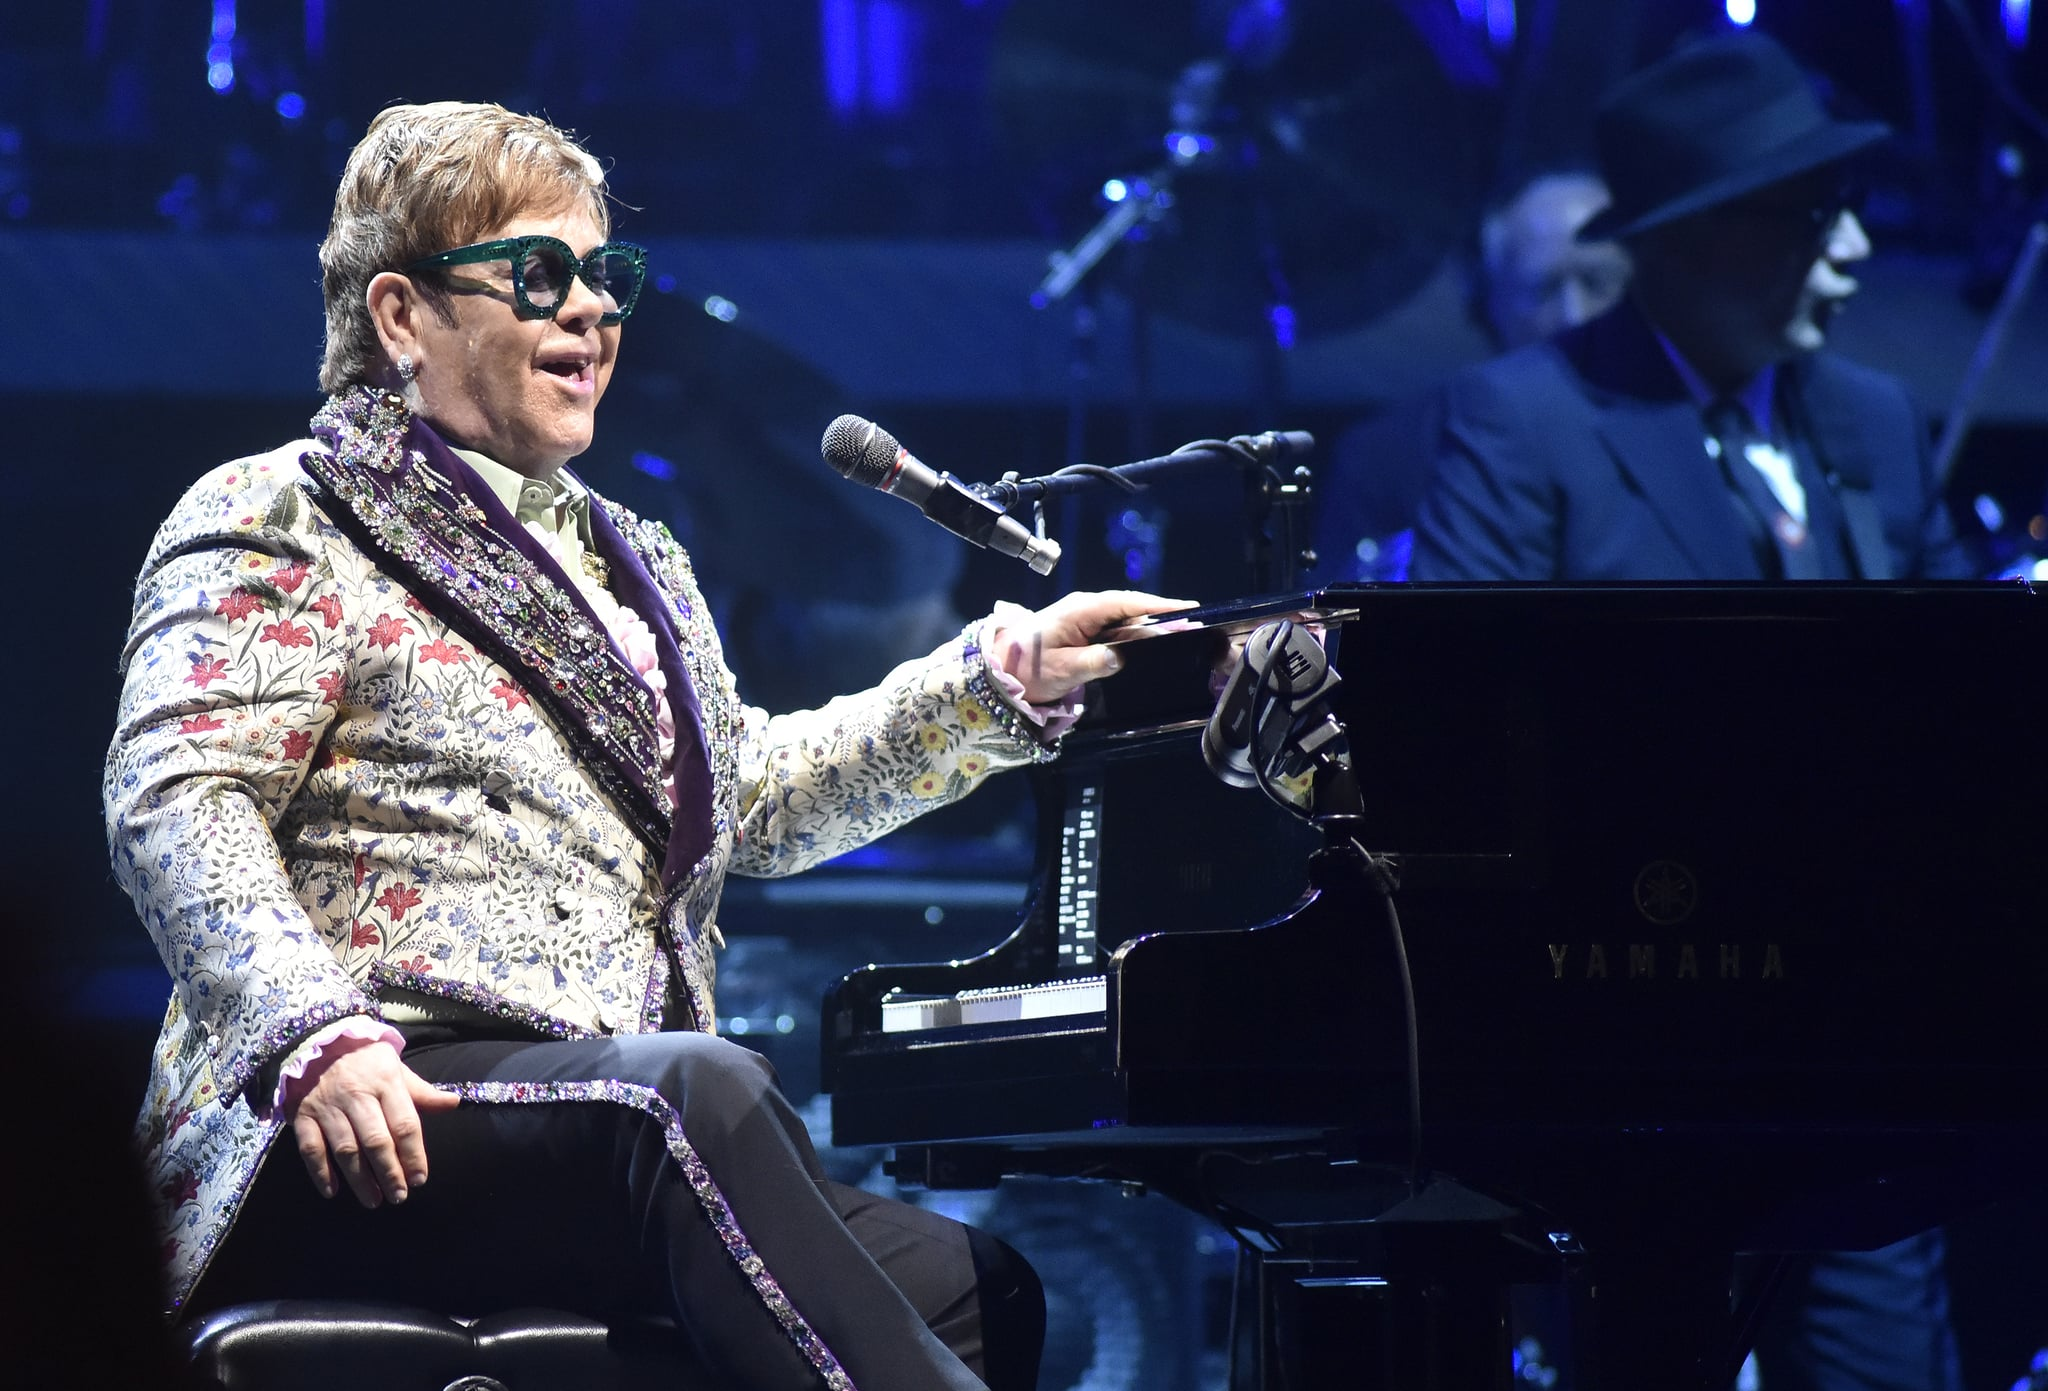 SACRAMENTO, CALIFORNIA - JANUARY 16: Elton John performs during his